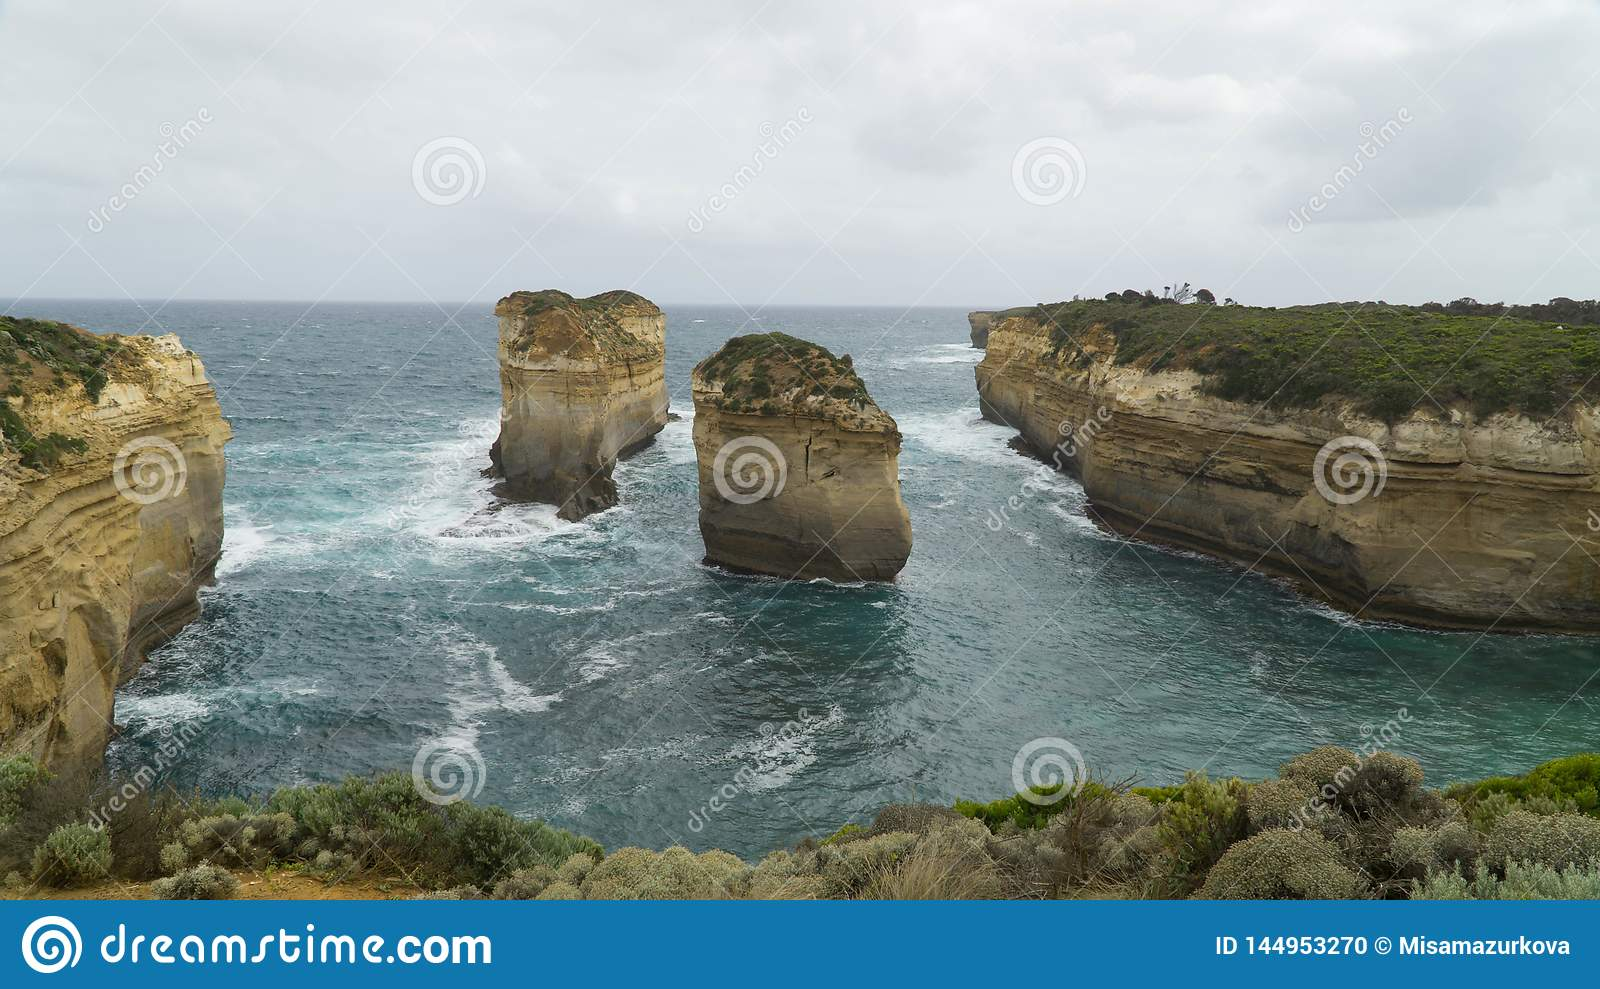 Two isolated cliffs and rock formations along The Great Ocean Road, caused by water erosion, Australia